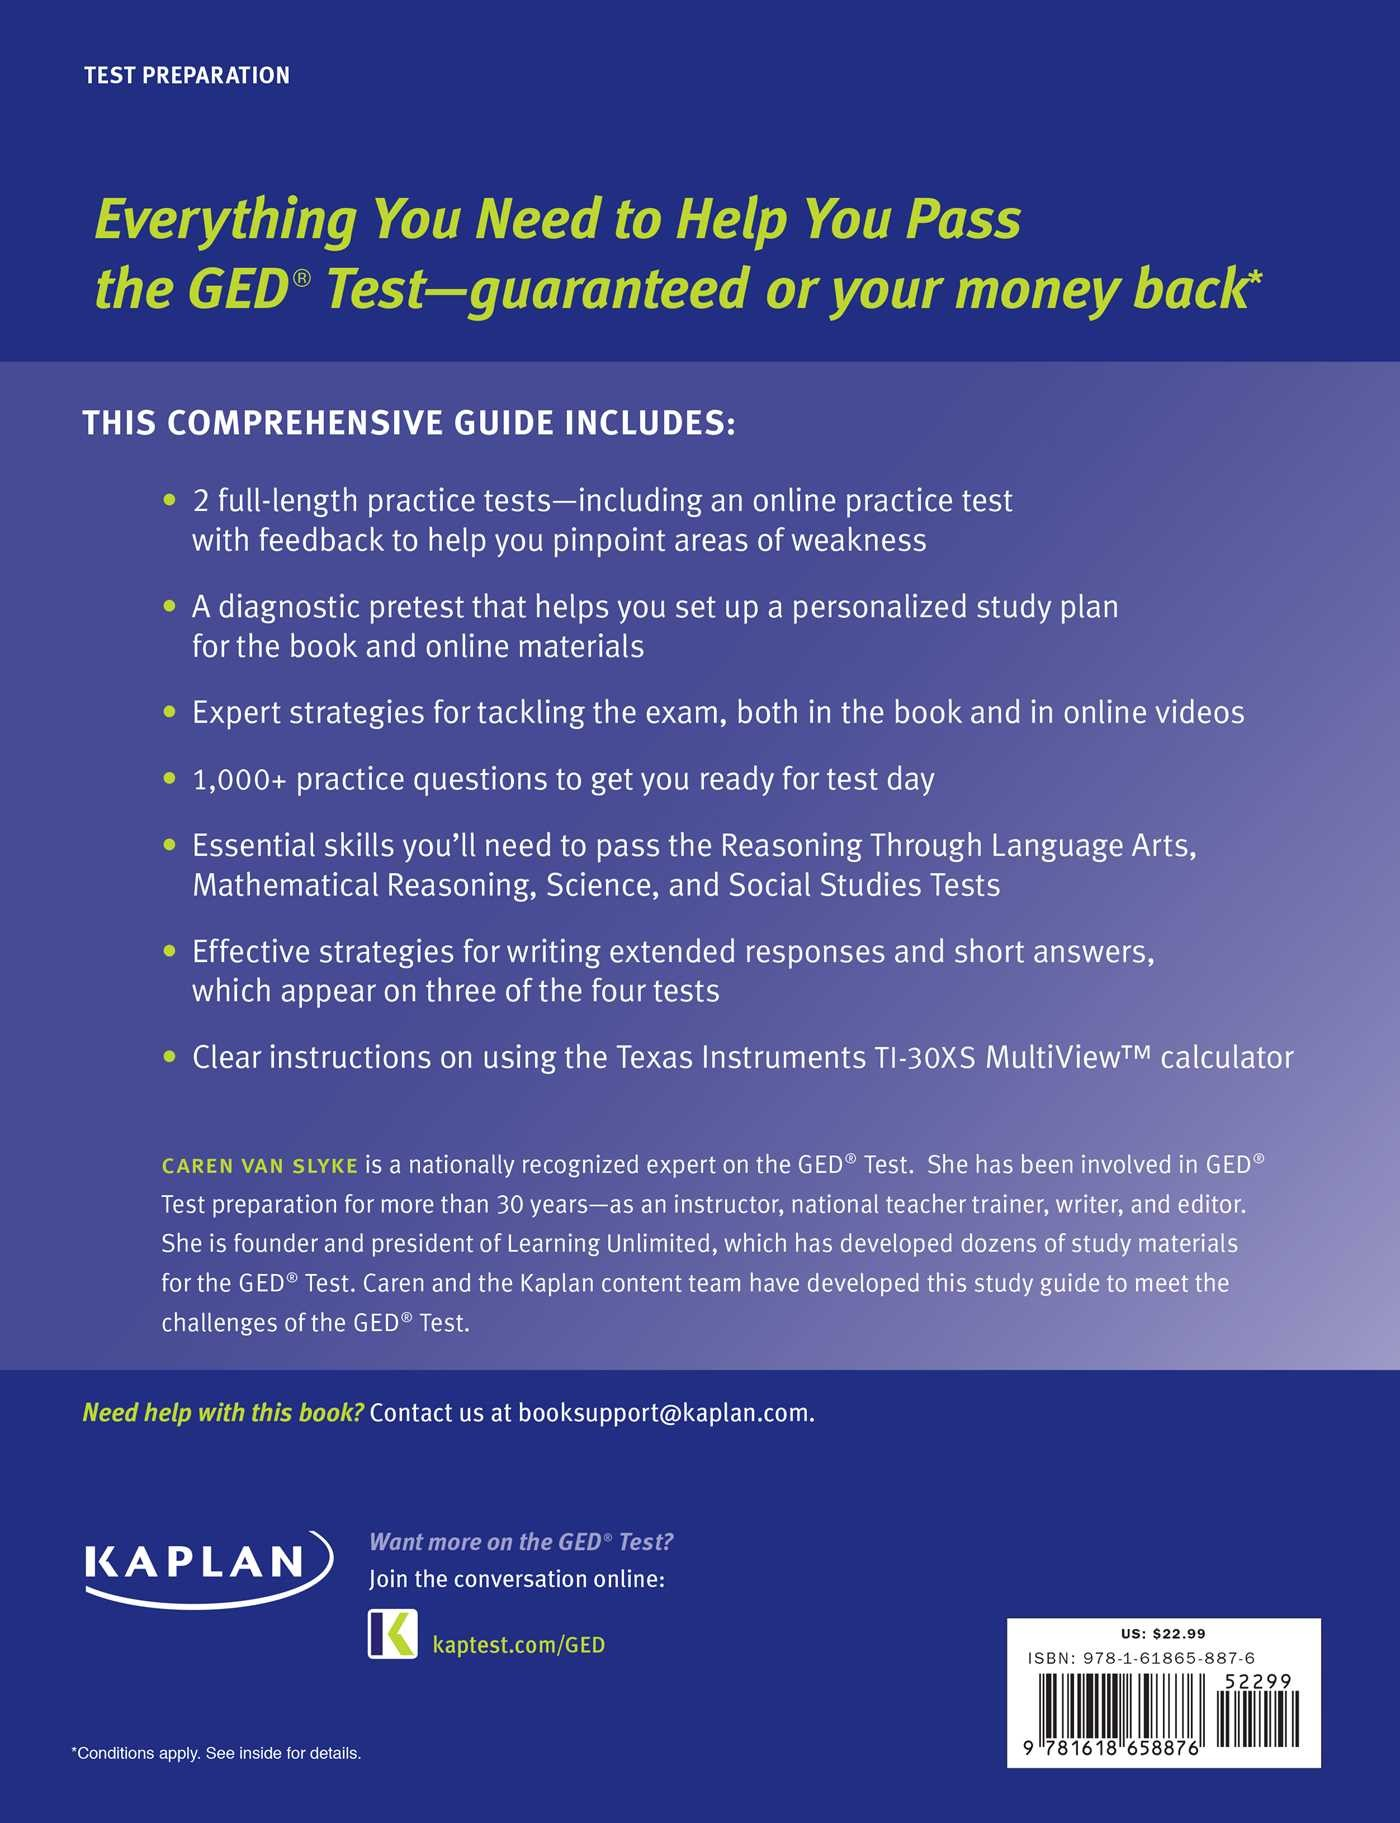 Kaplan-ged-test-2015-strategies-practice-and-2-9781618658876.in01